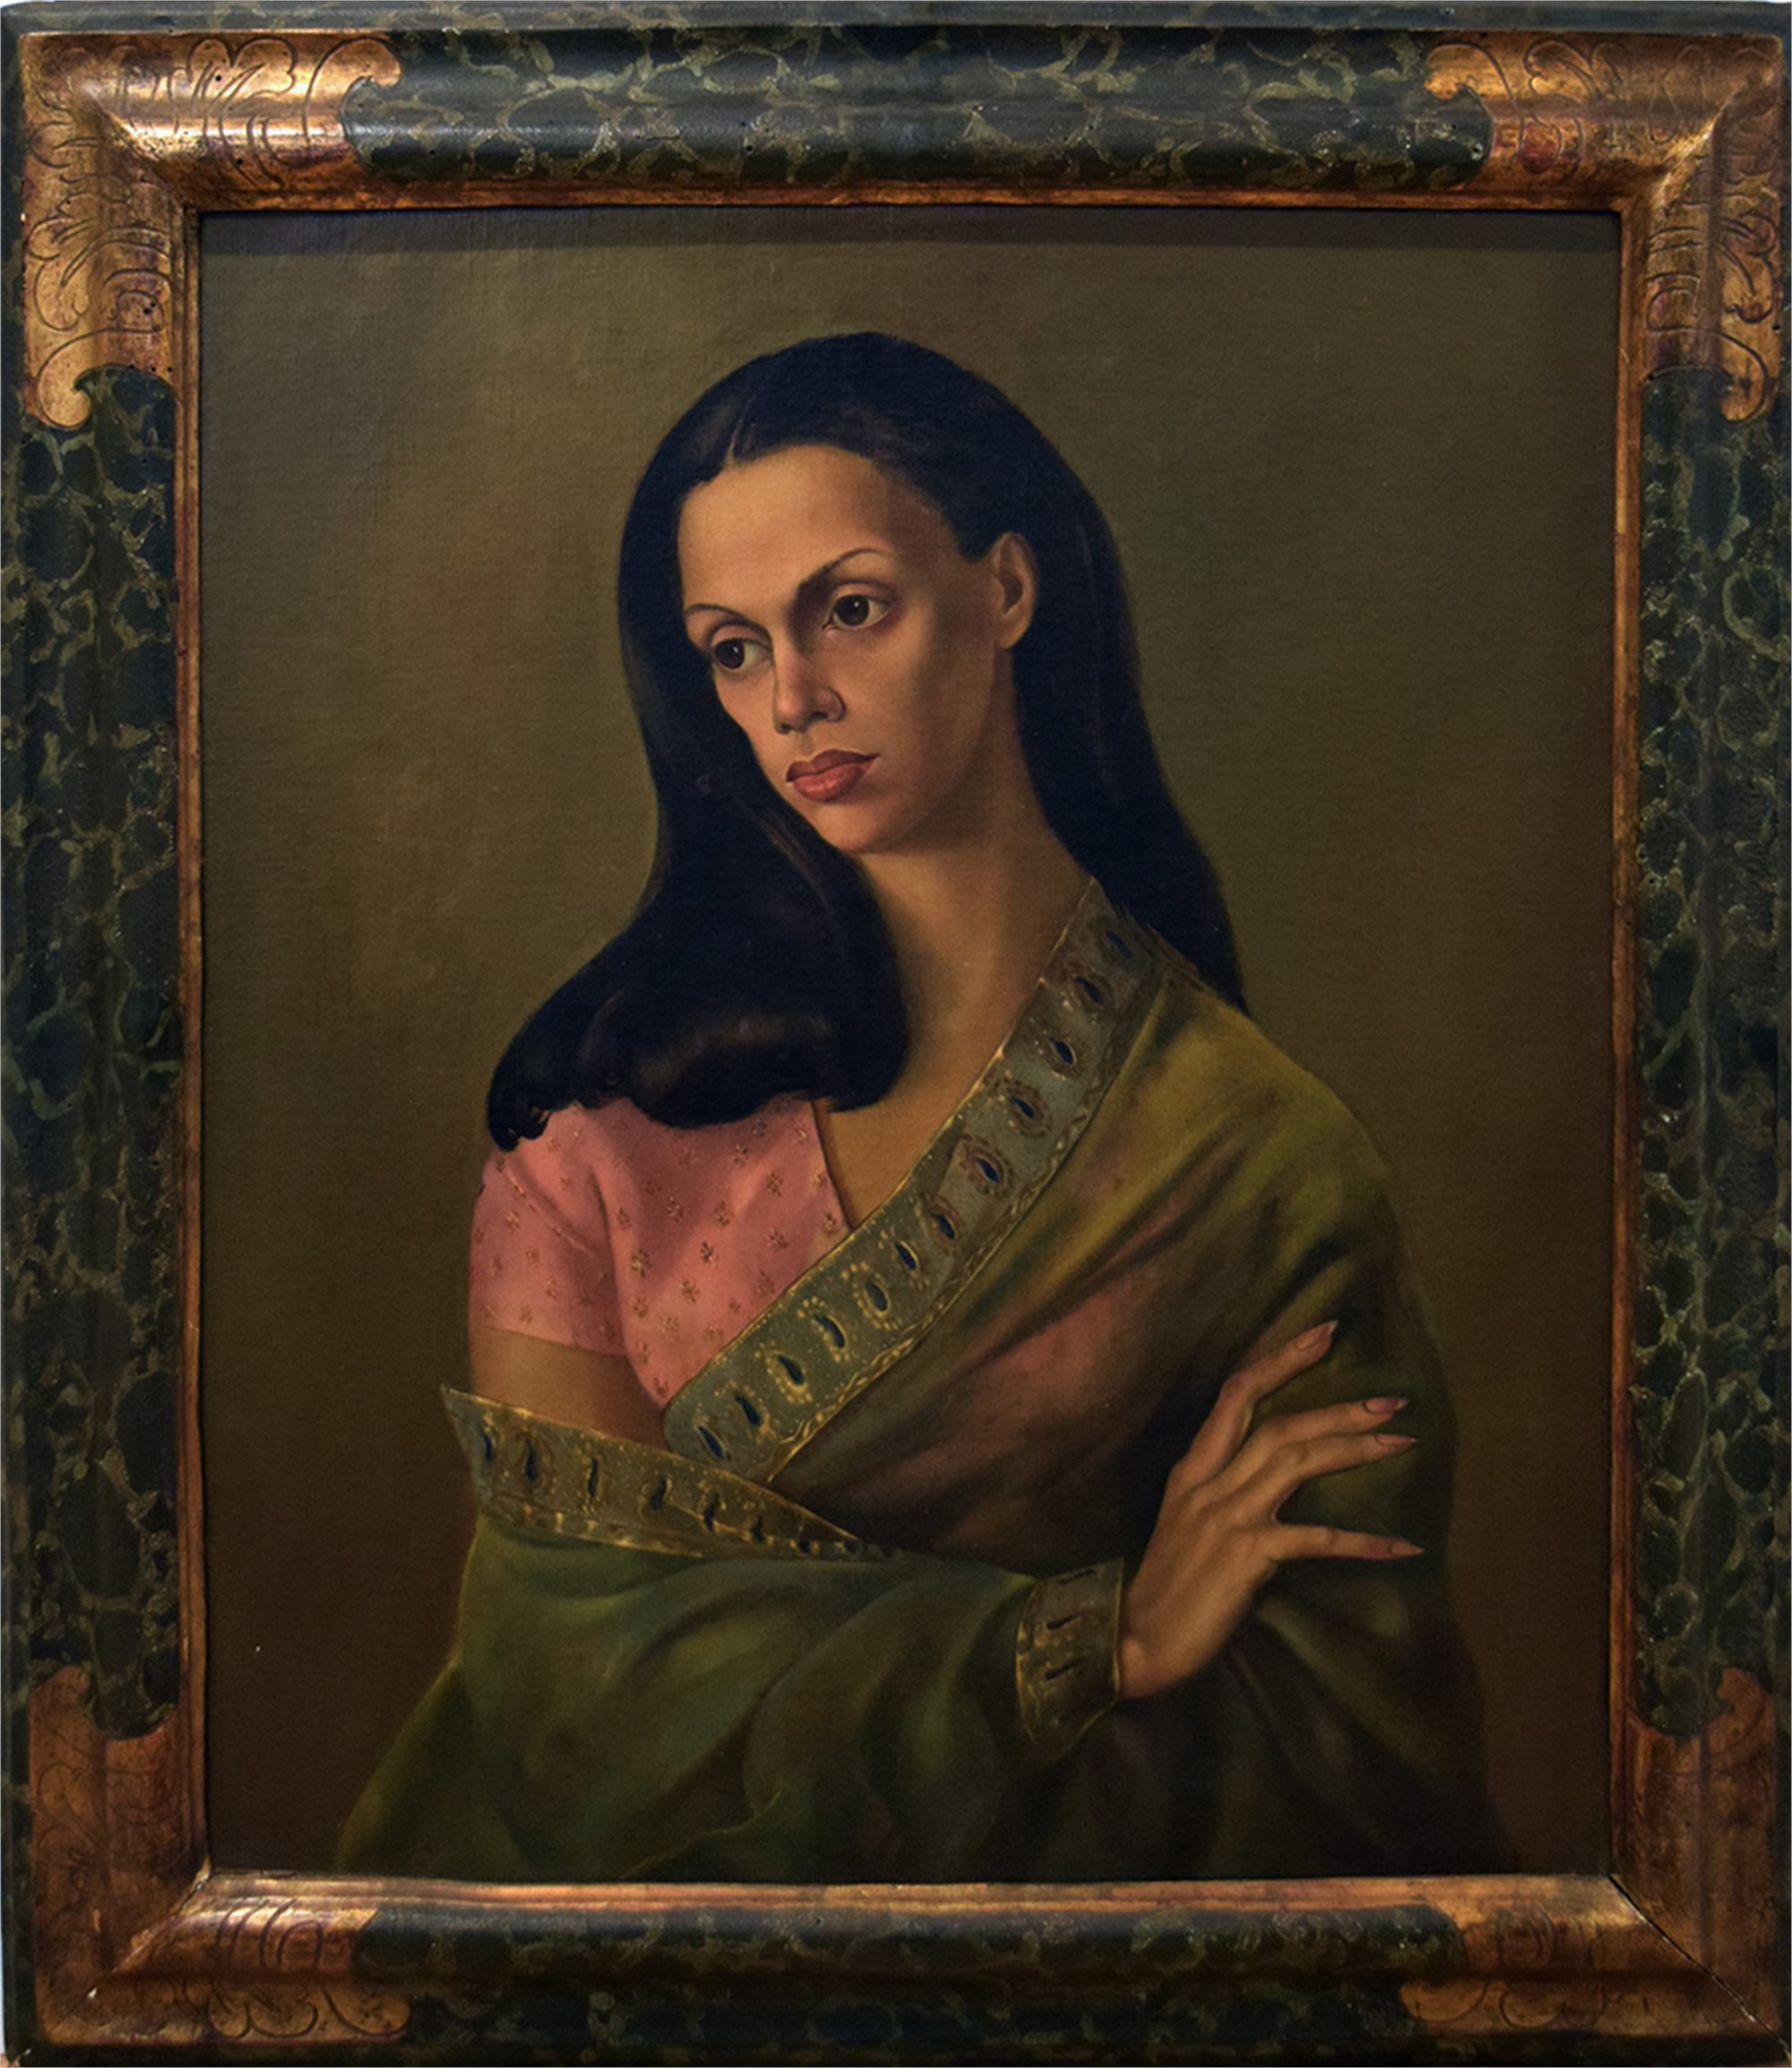 PORTRAIT OF BACHOO DINSHAW, COUNTESS WORONZOW by Leonor Fini